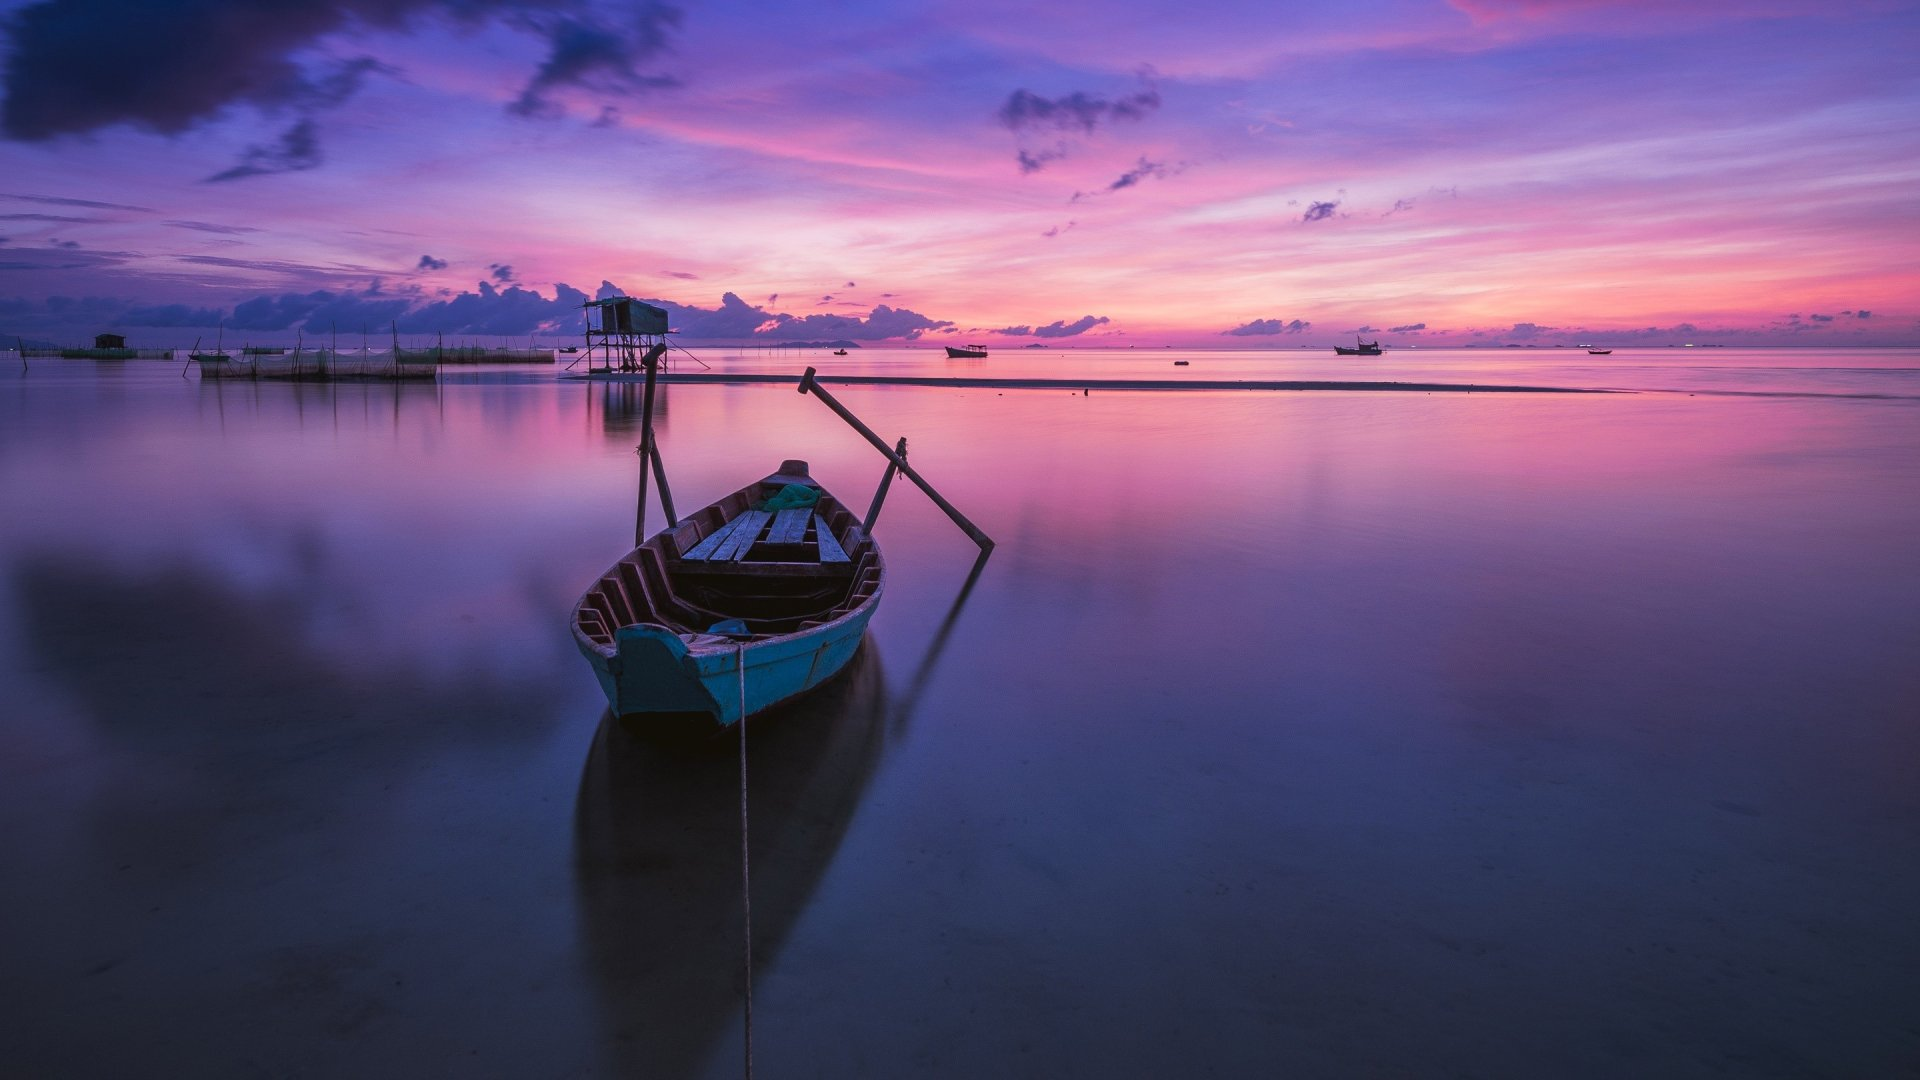 A Boat At Sunset Wallpaper Id2516